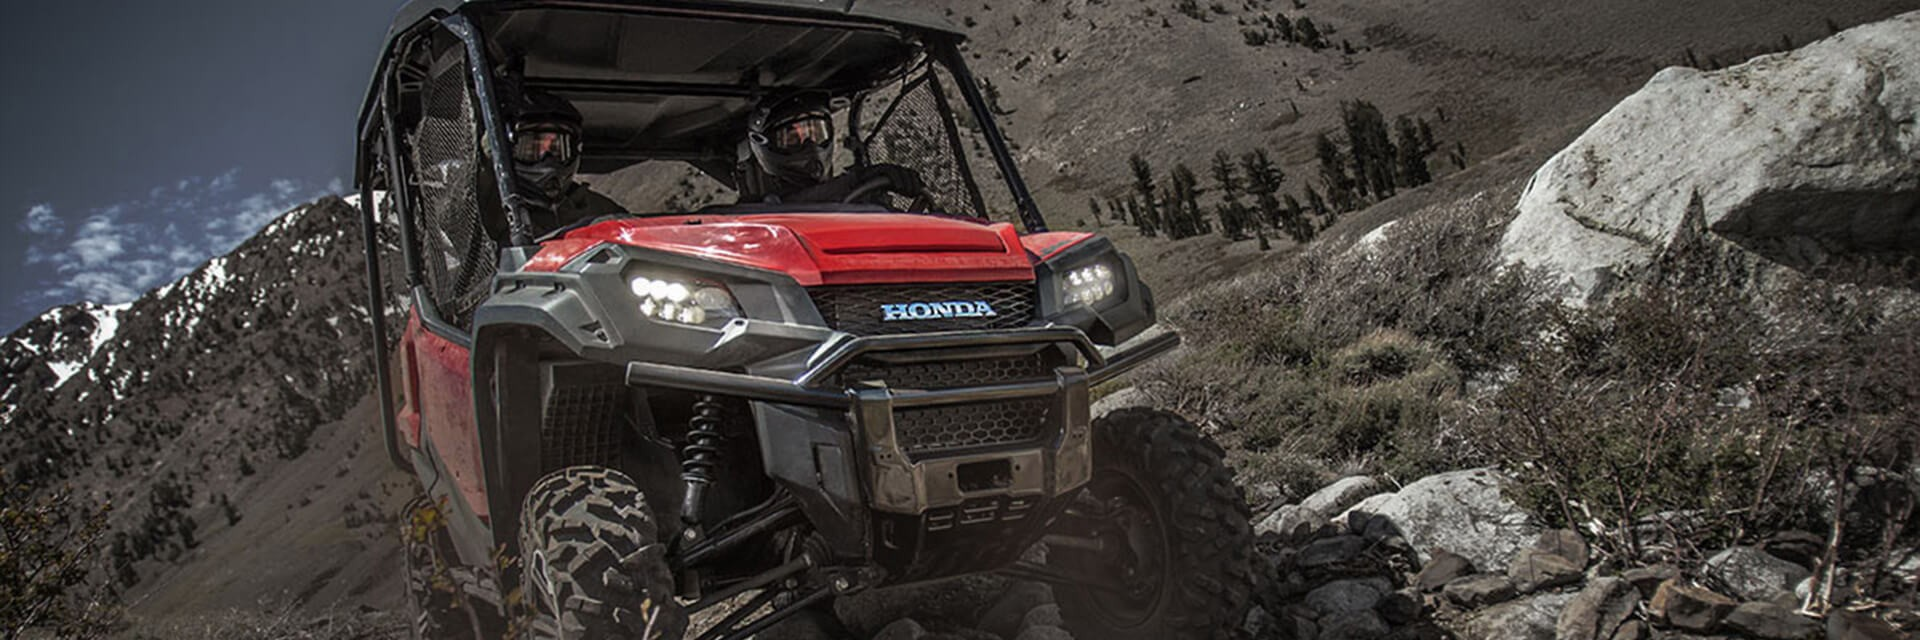 Exceptional Shop UTVs At Honda Of Tupelo